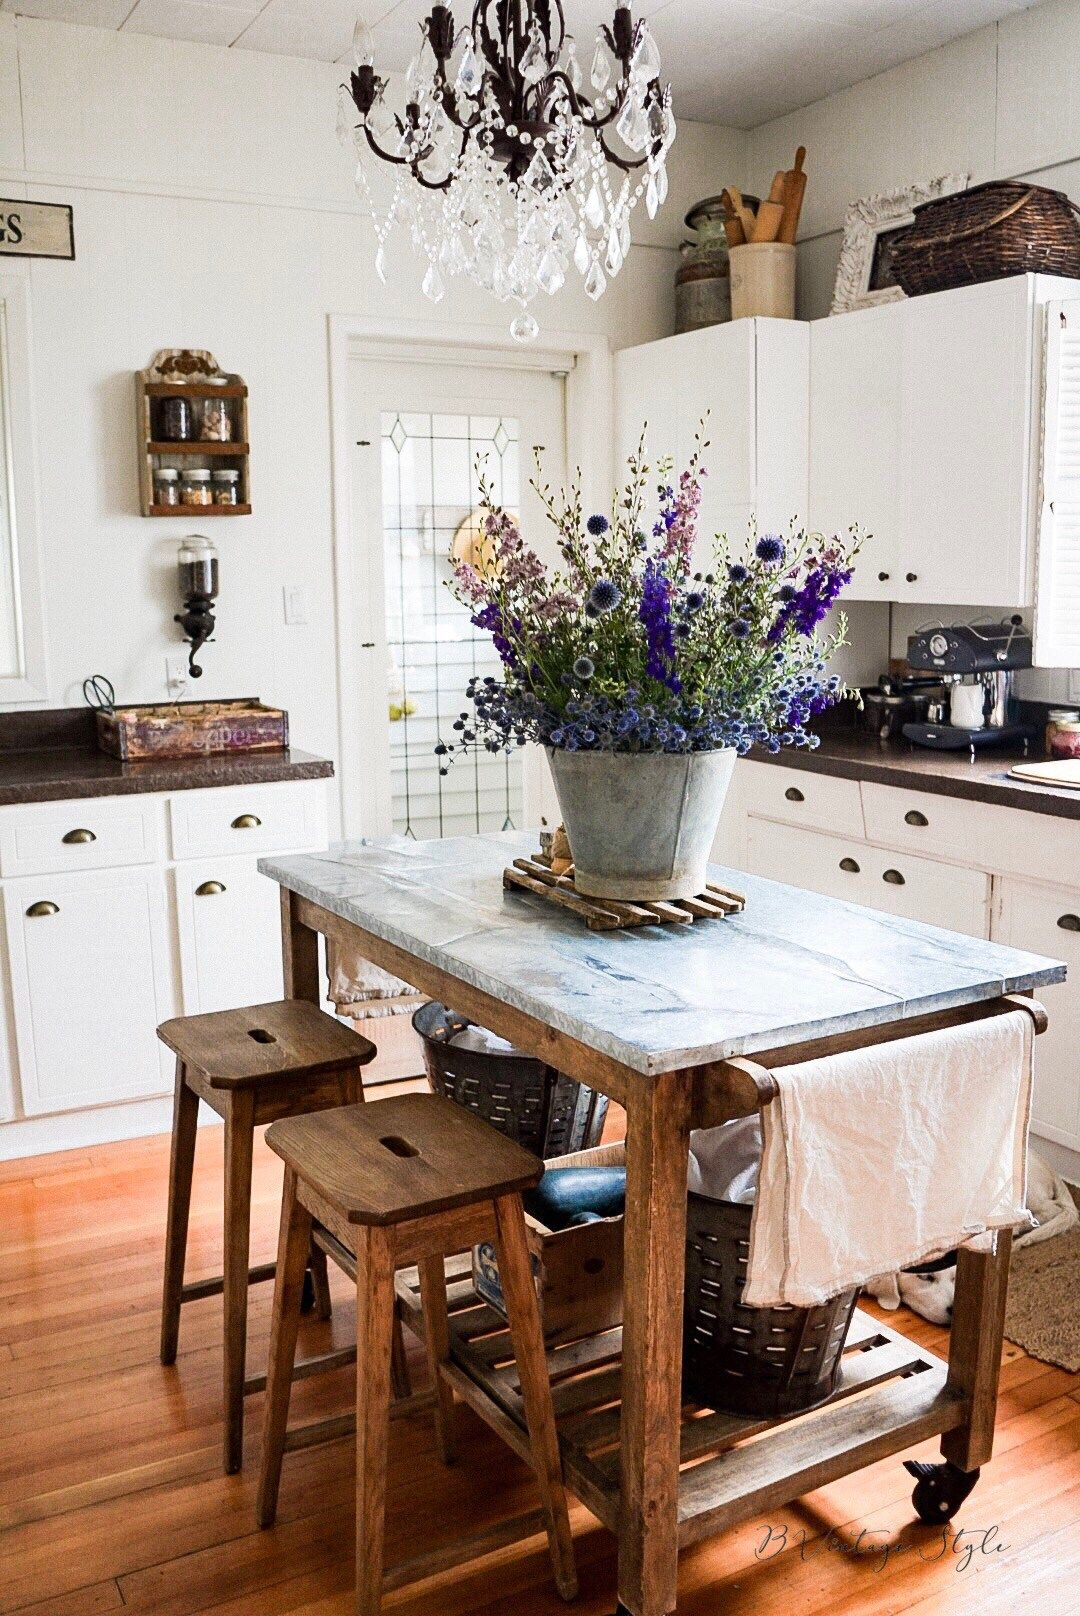 Eclectic Home Tour – B Vintage Style